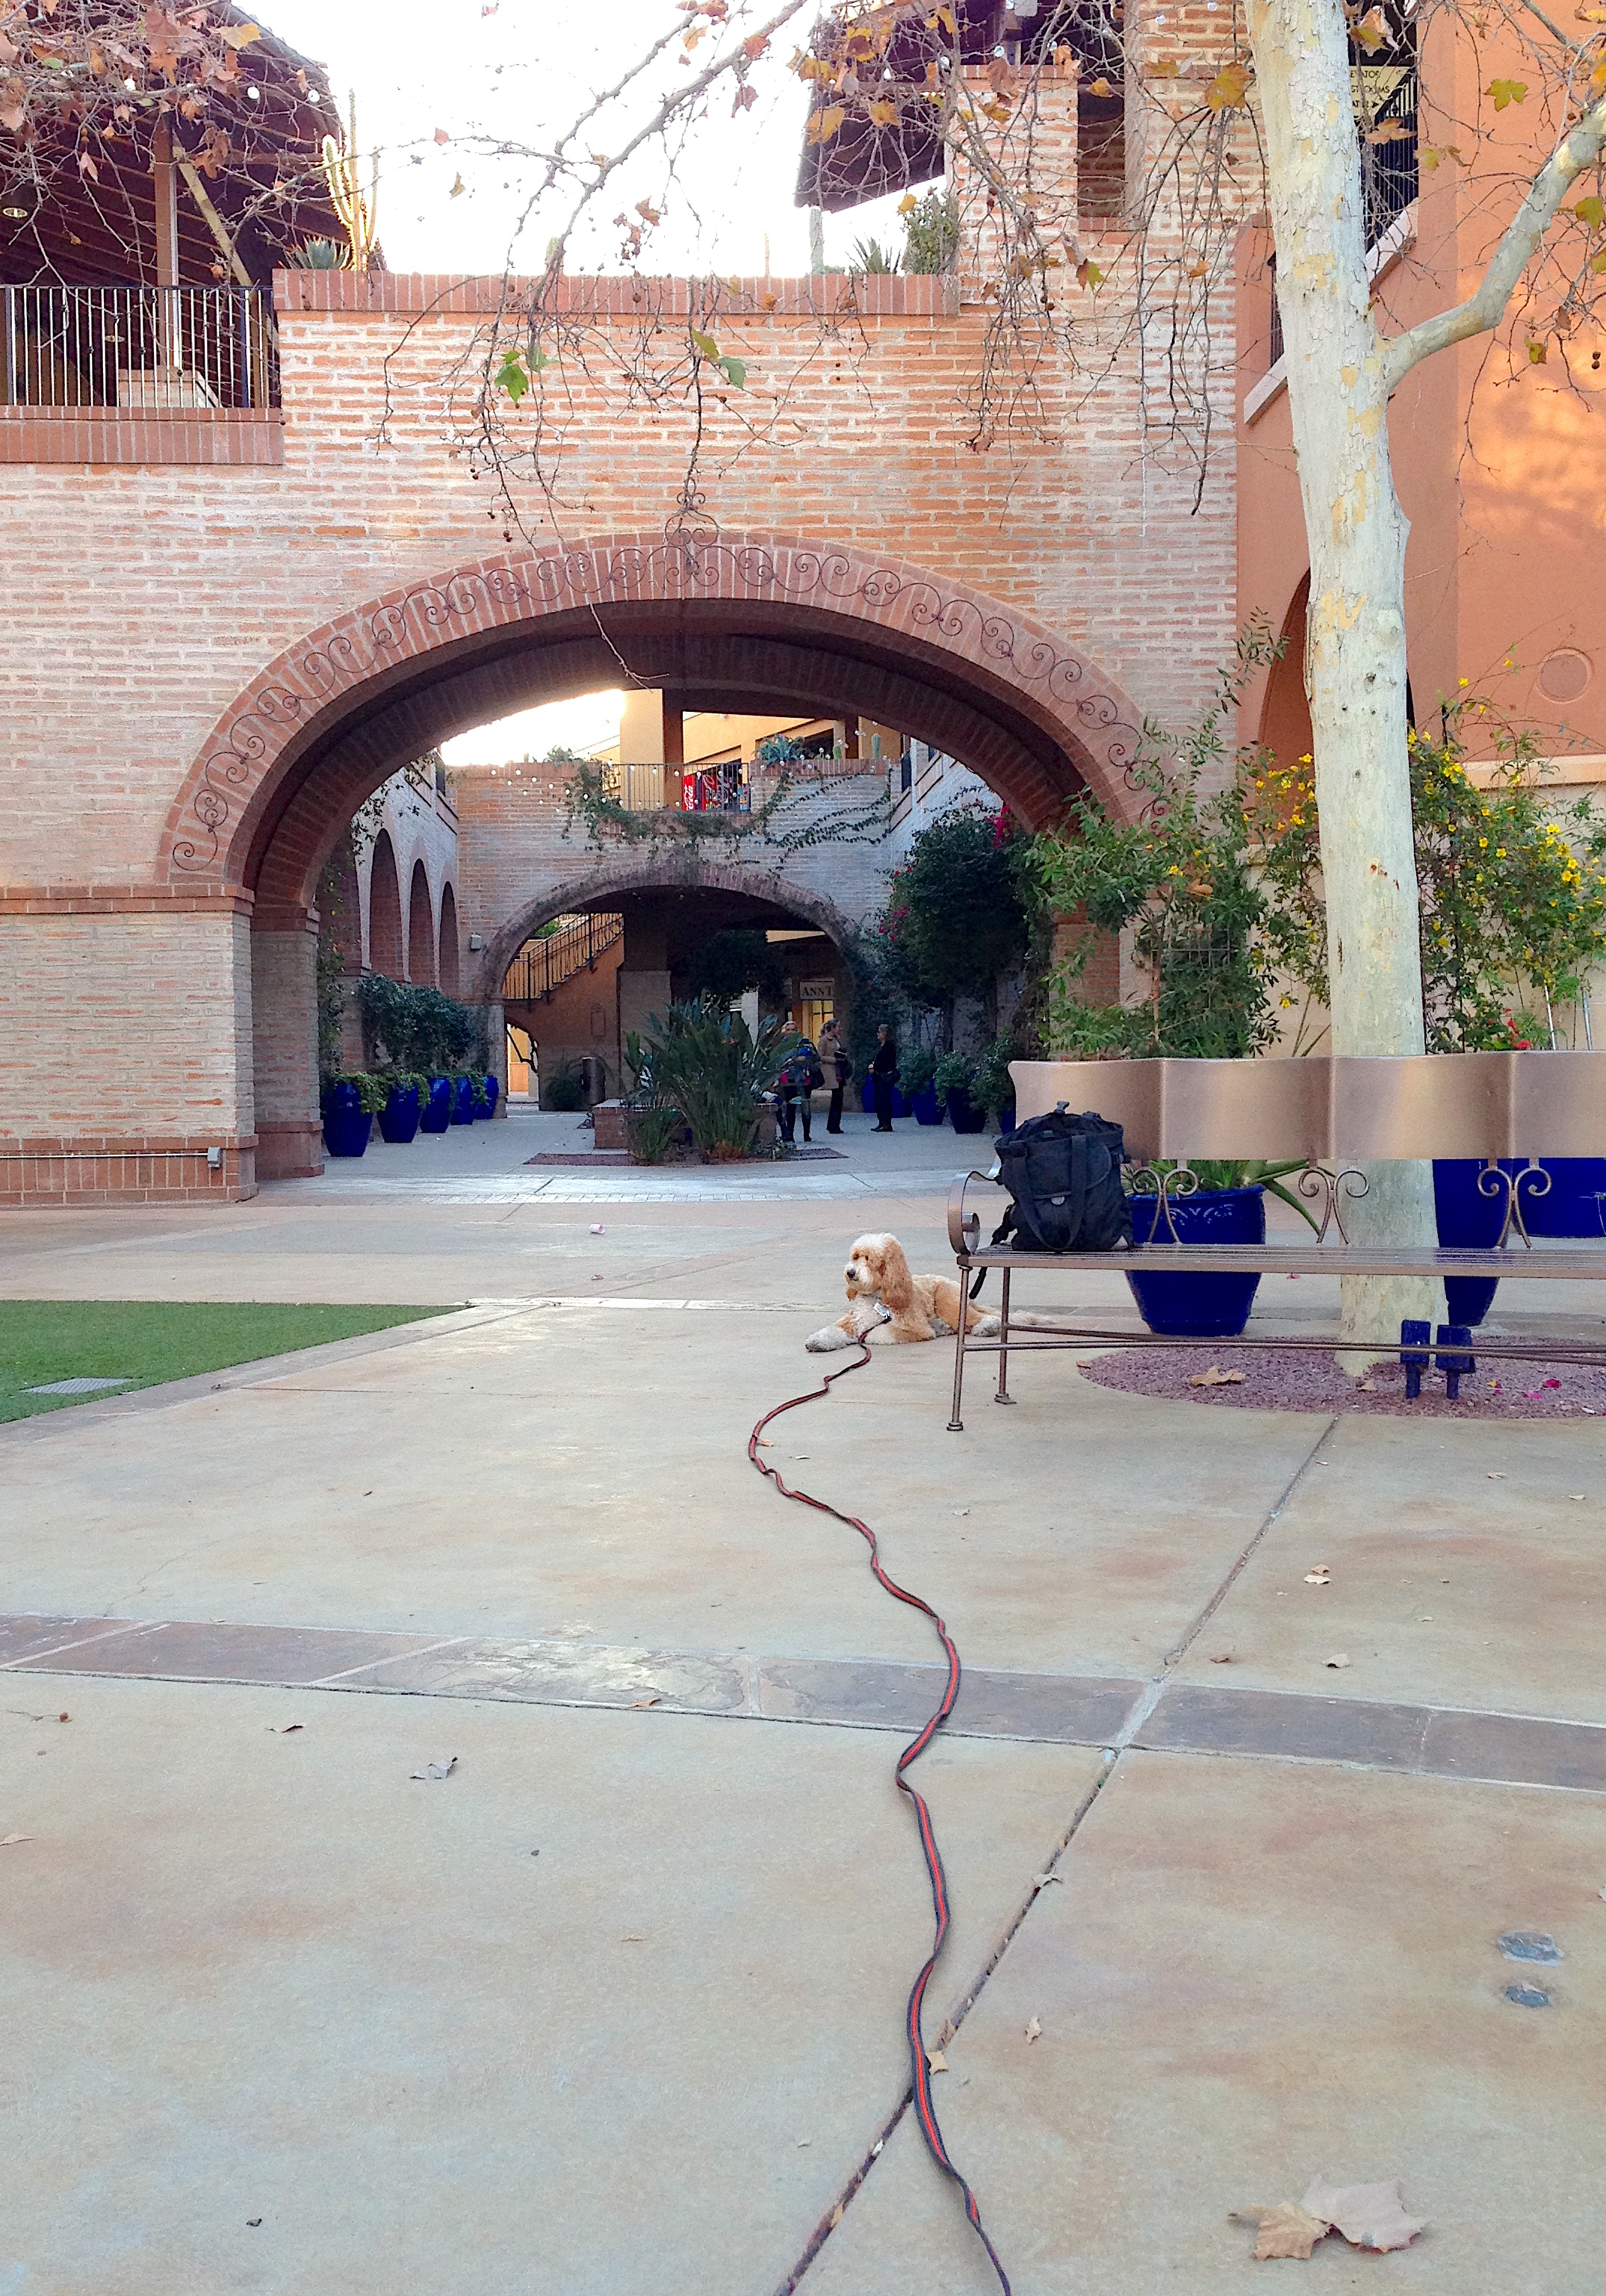 Bernie McSquare practices his down-stay with several people chattering away behind him at la Encantada Shopping Center in Tucson, Arizona.